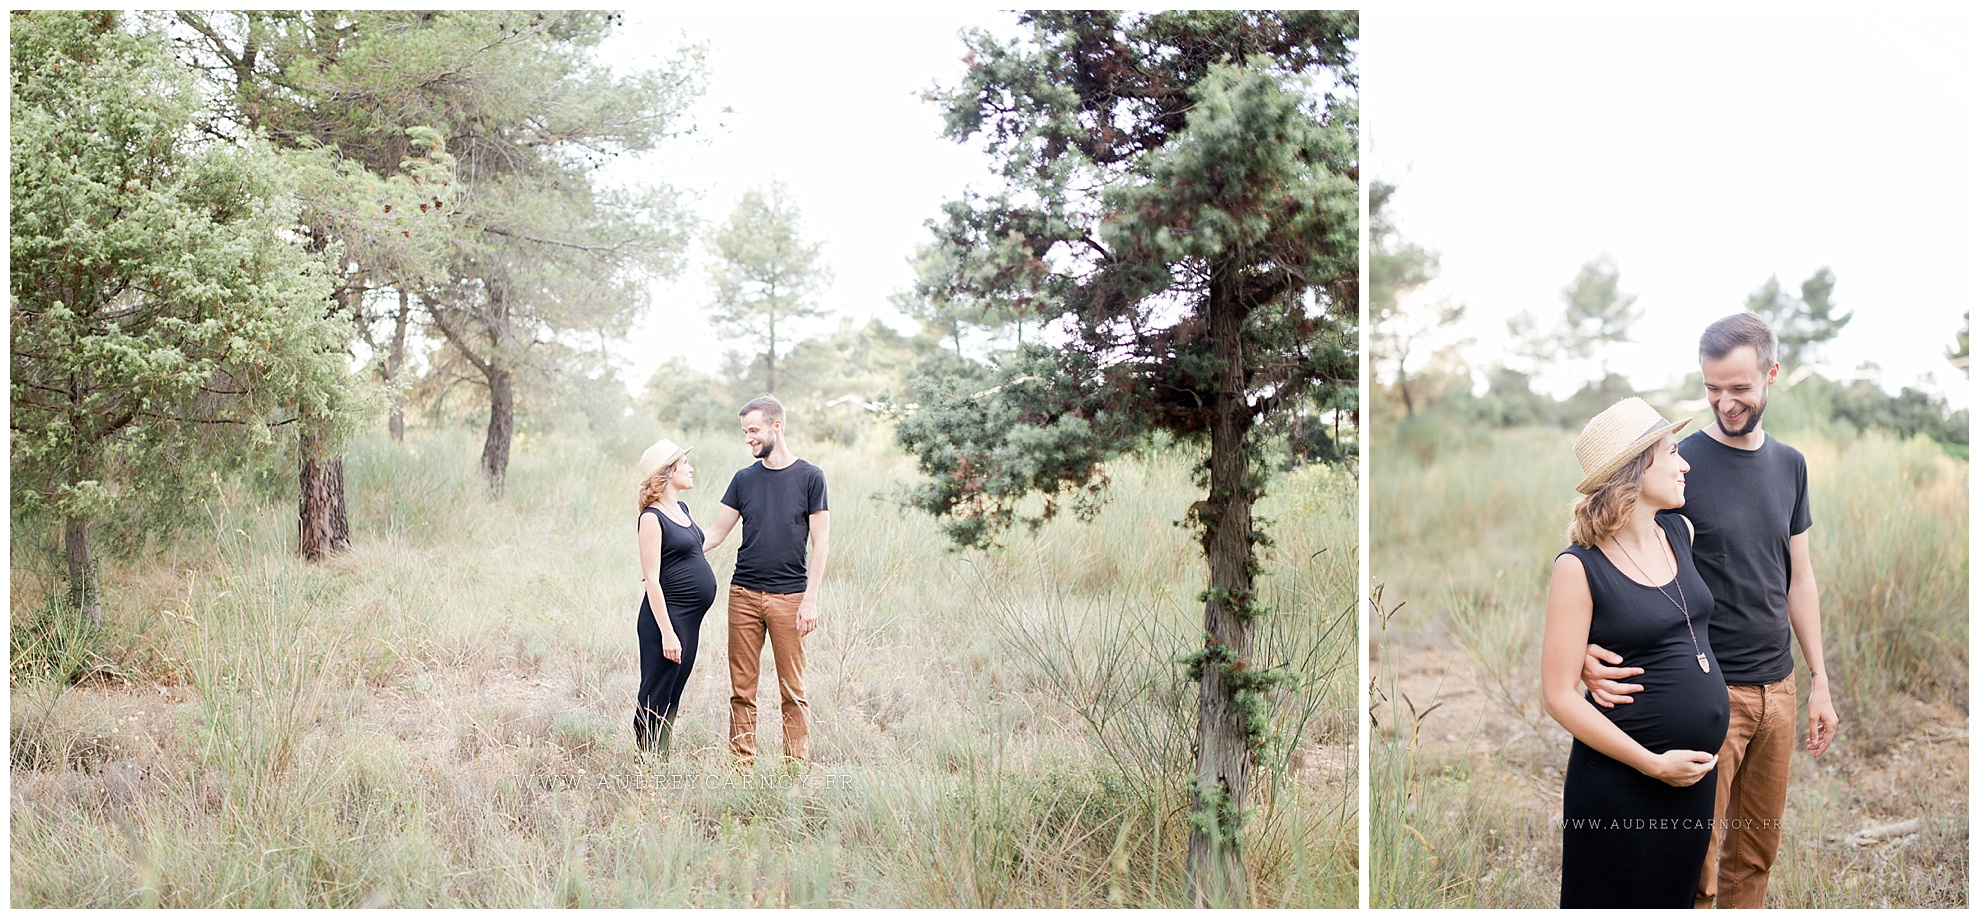 Seance grossesse Provence - Pertuis | Audrey & Jerome 3